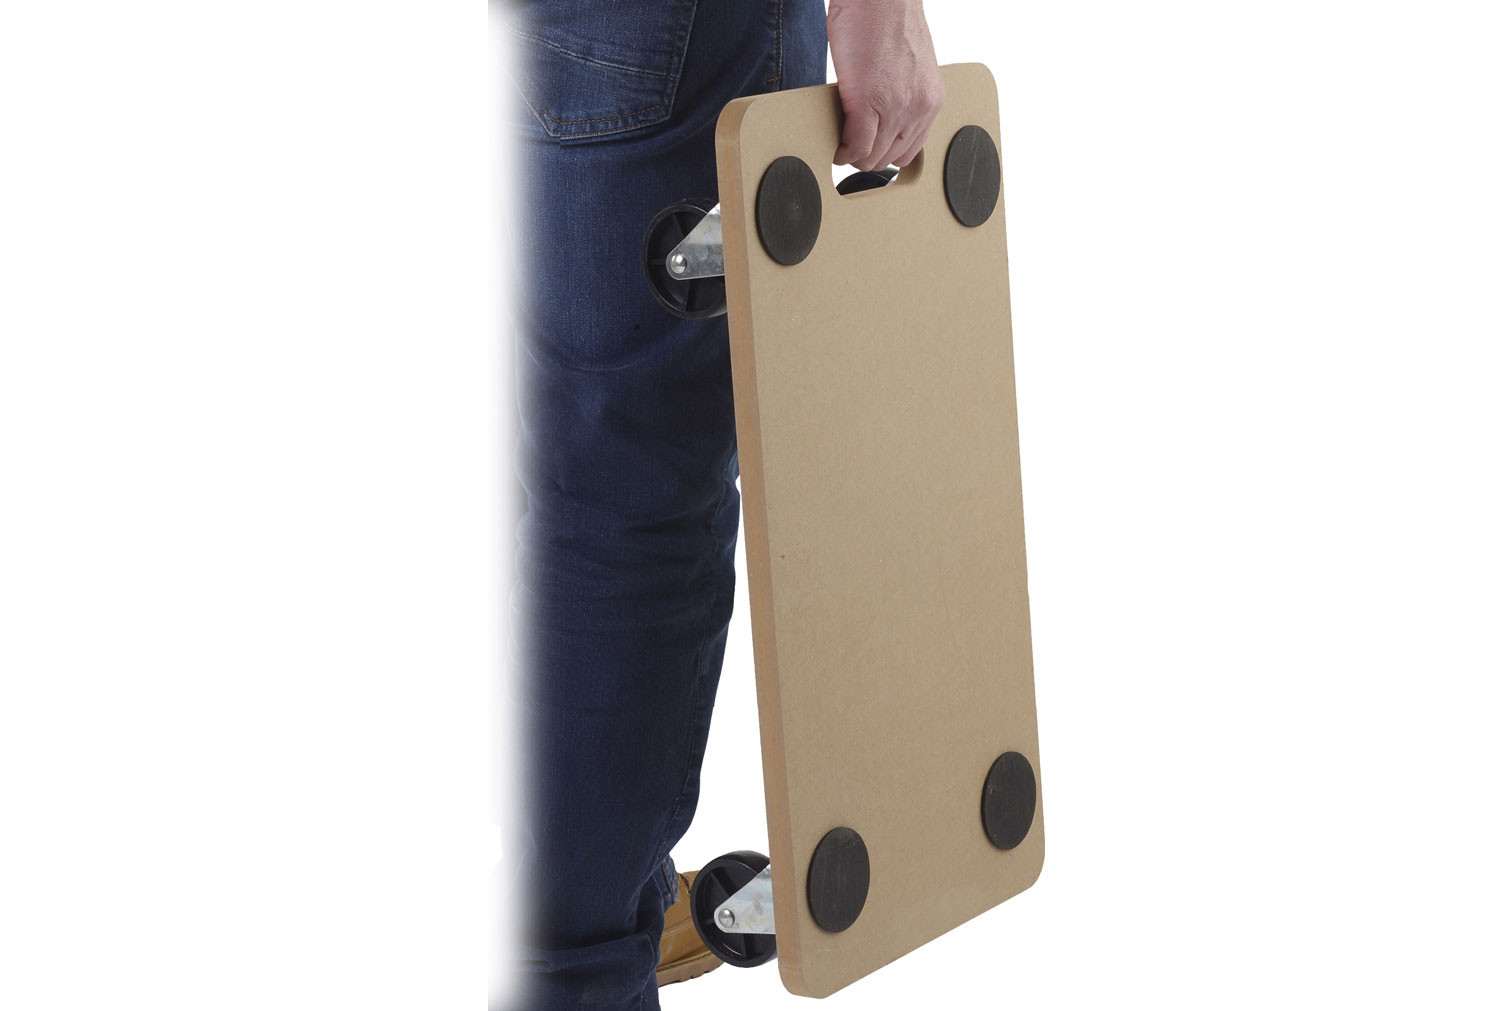 Wooden Dolly (150kg Capacity)